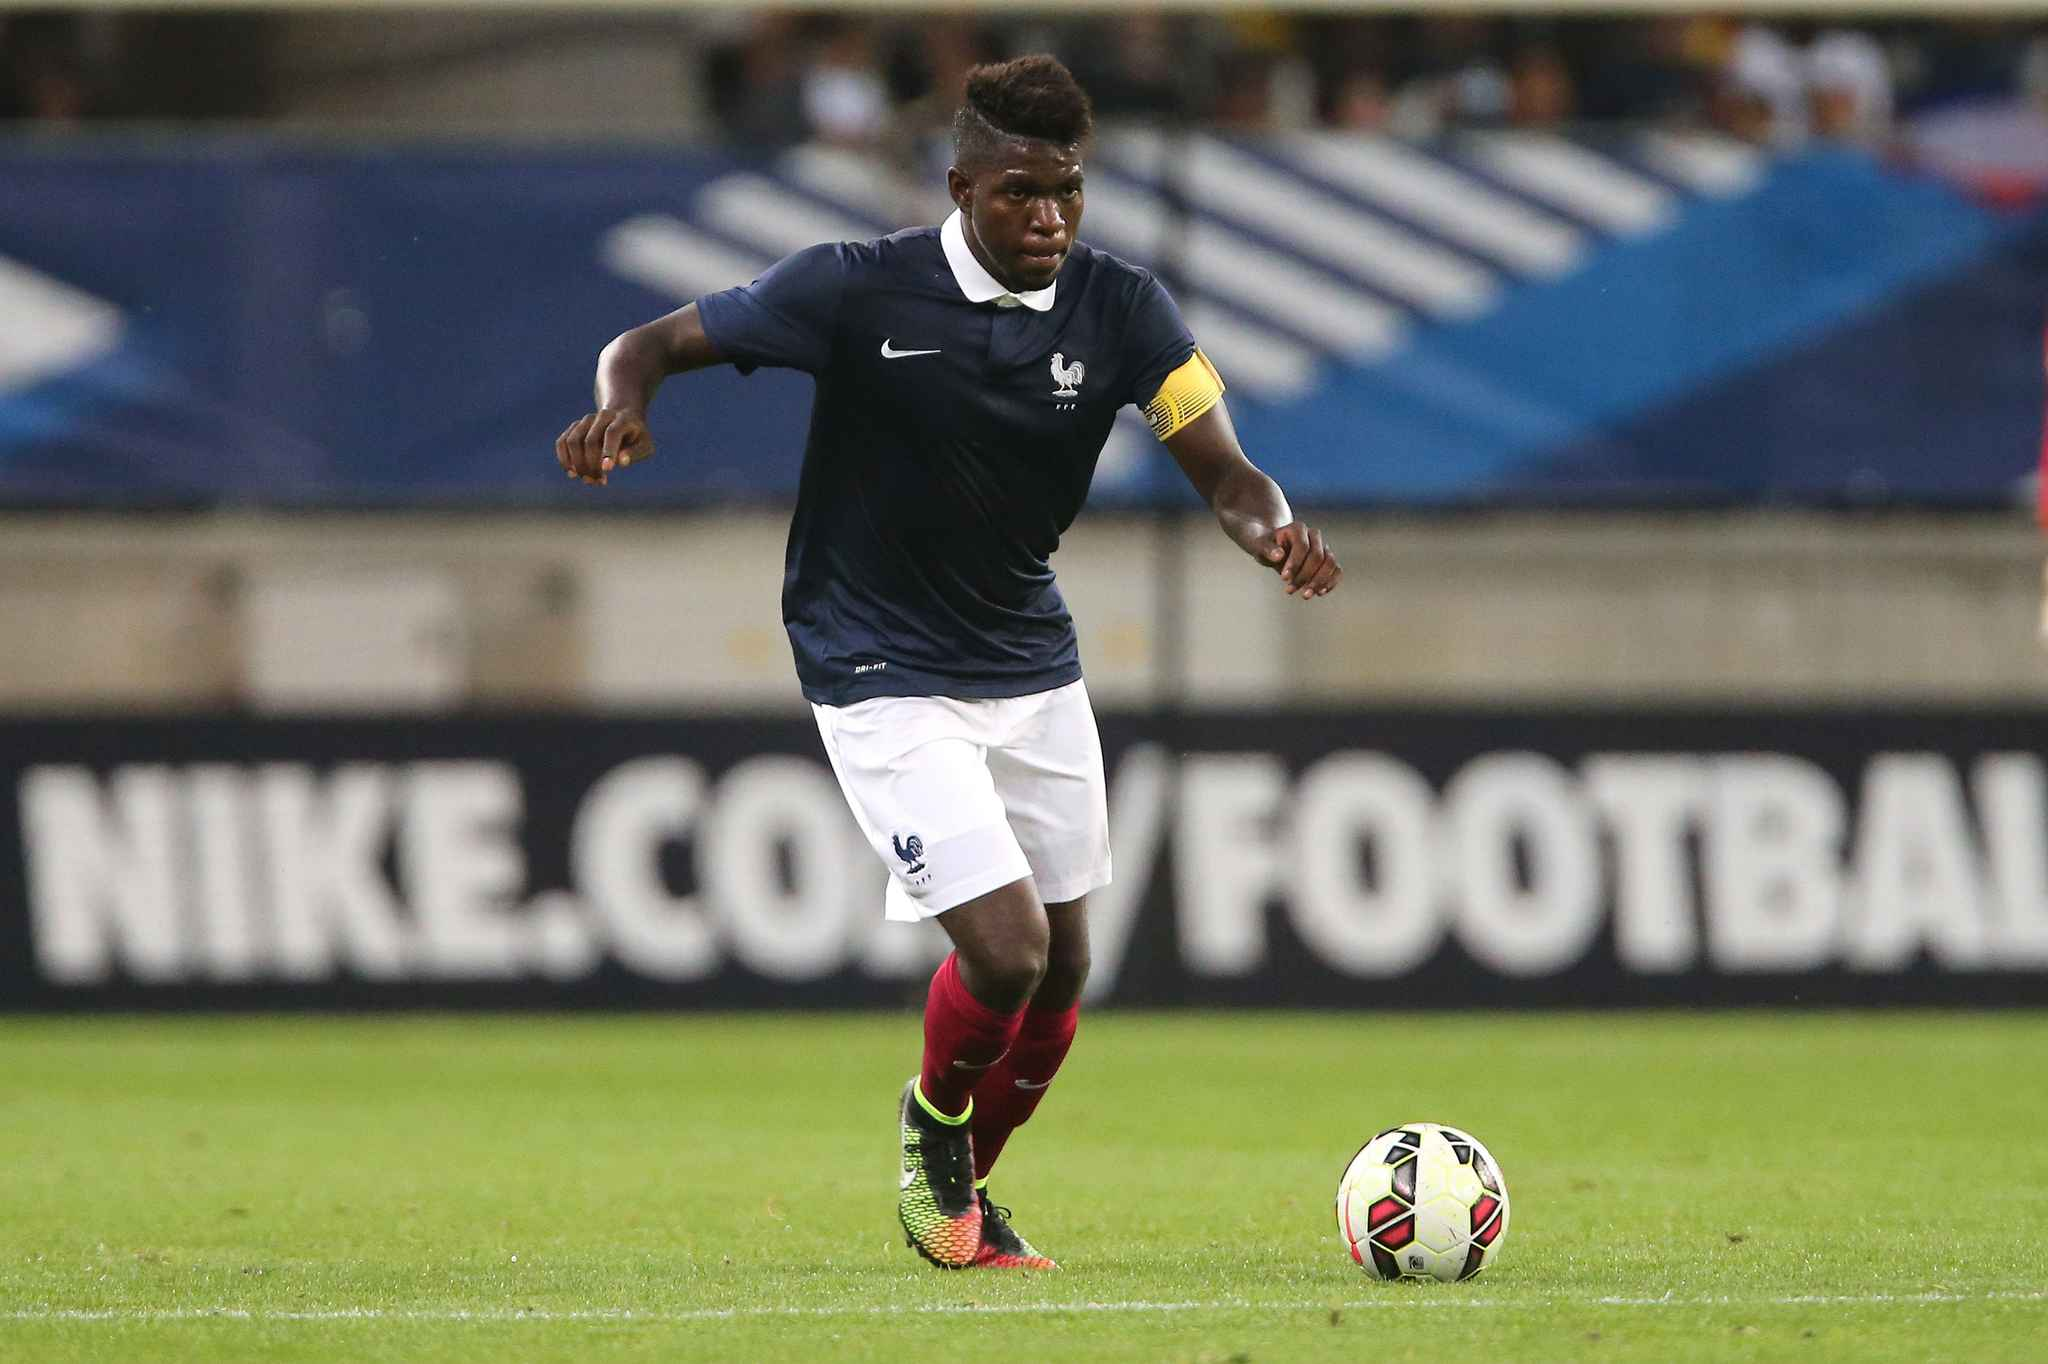 2048x1536-fit_france-s-player-samuel-umtiti-in-action-during-the-uefa-european-under-21-championship-play-off